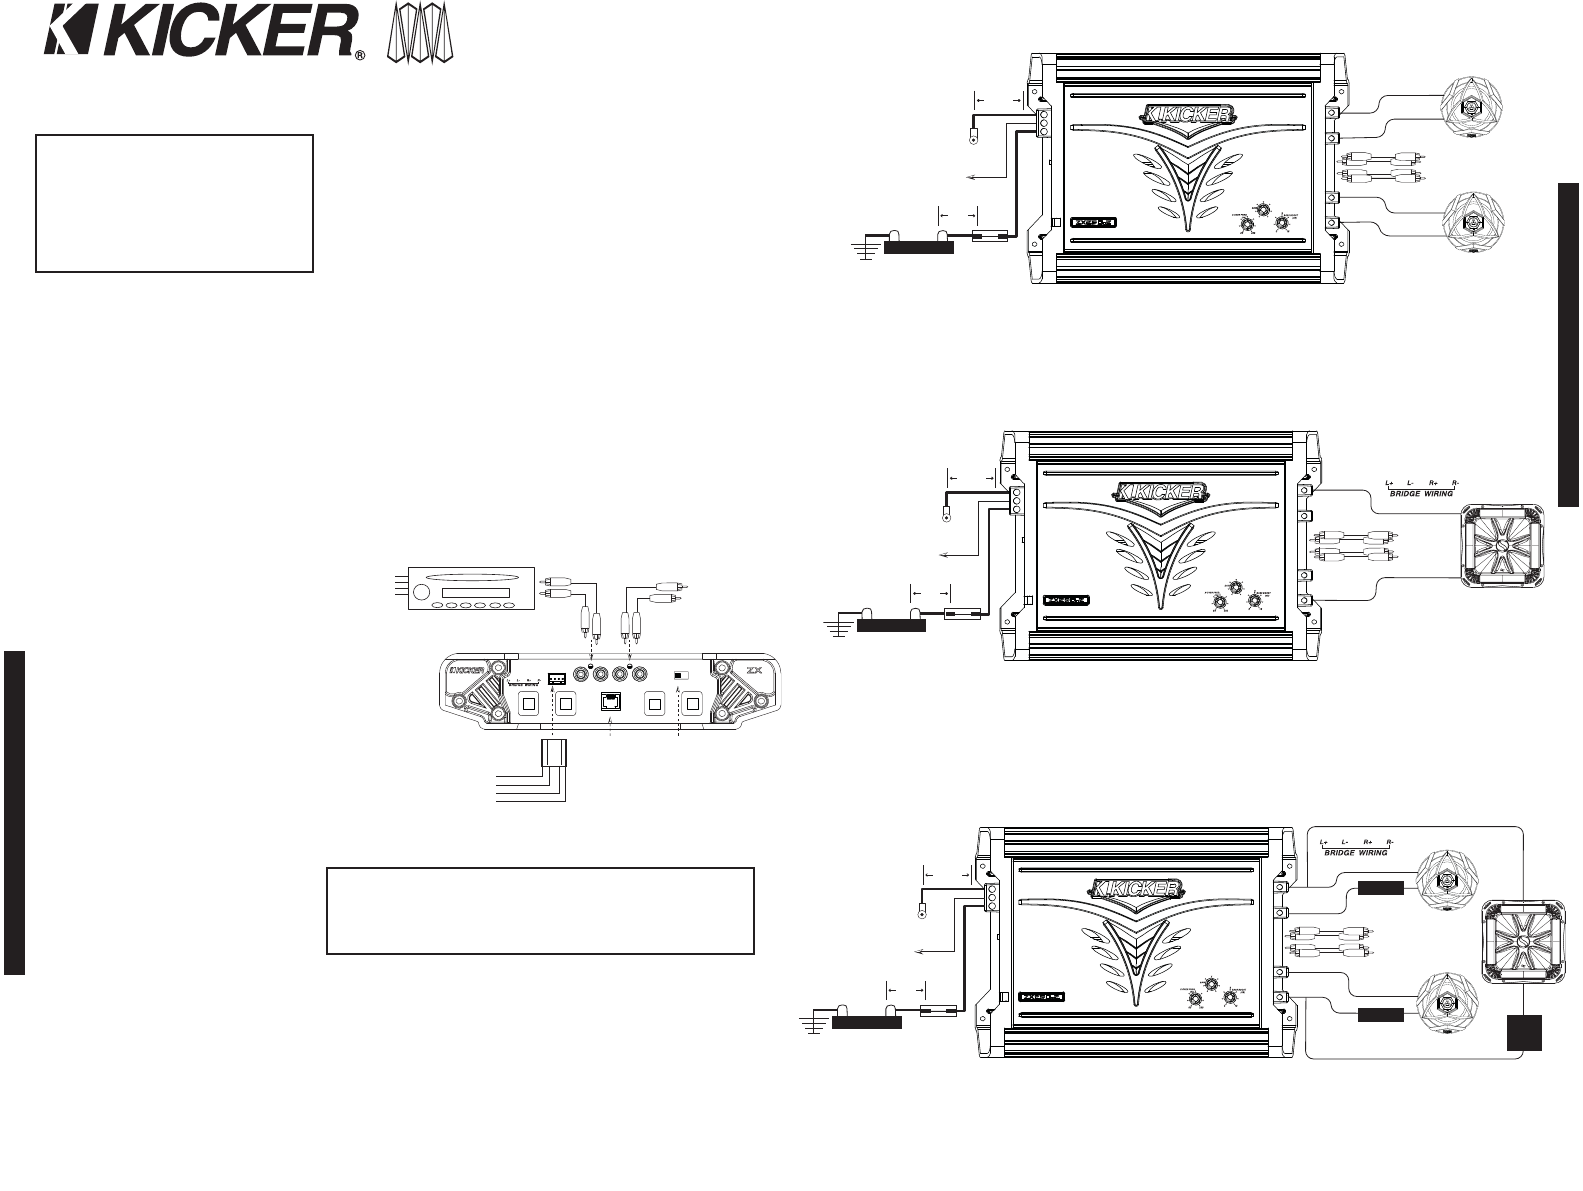 kicker comp 12 wiring diagram   29 wiring diagram images